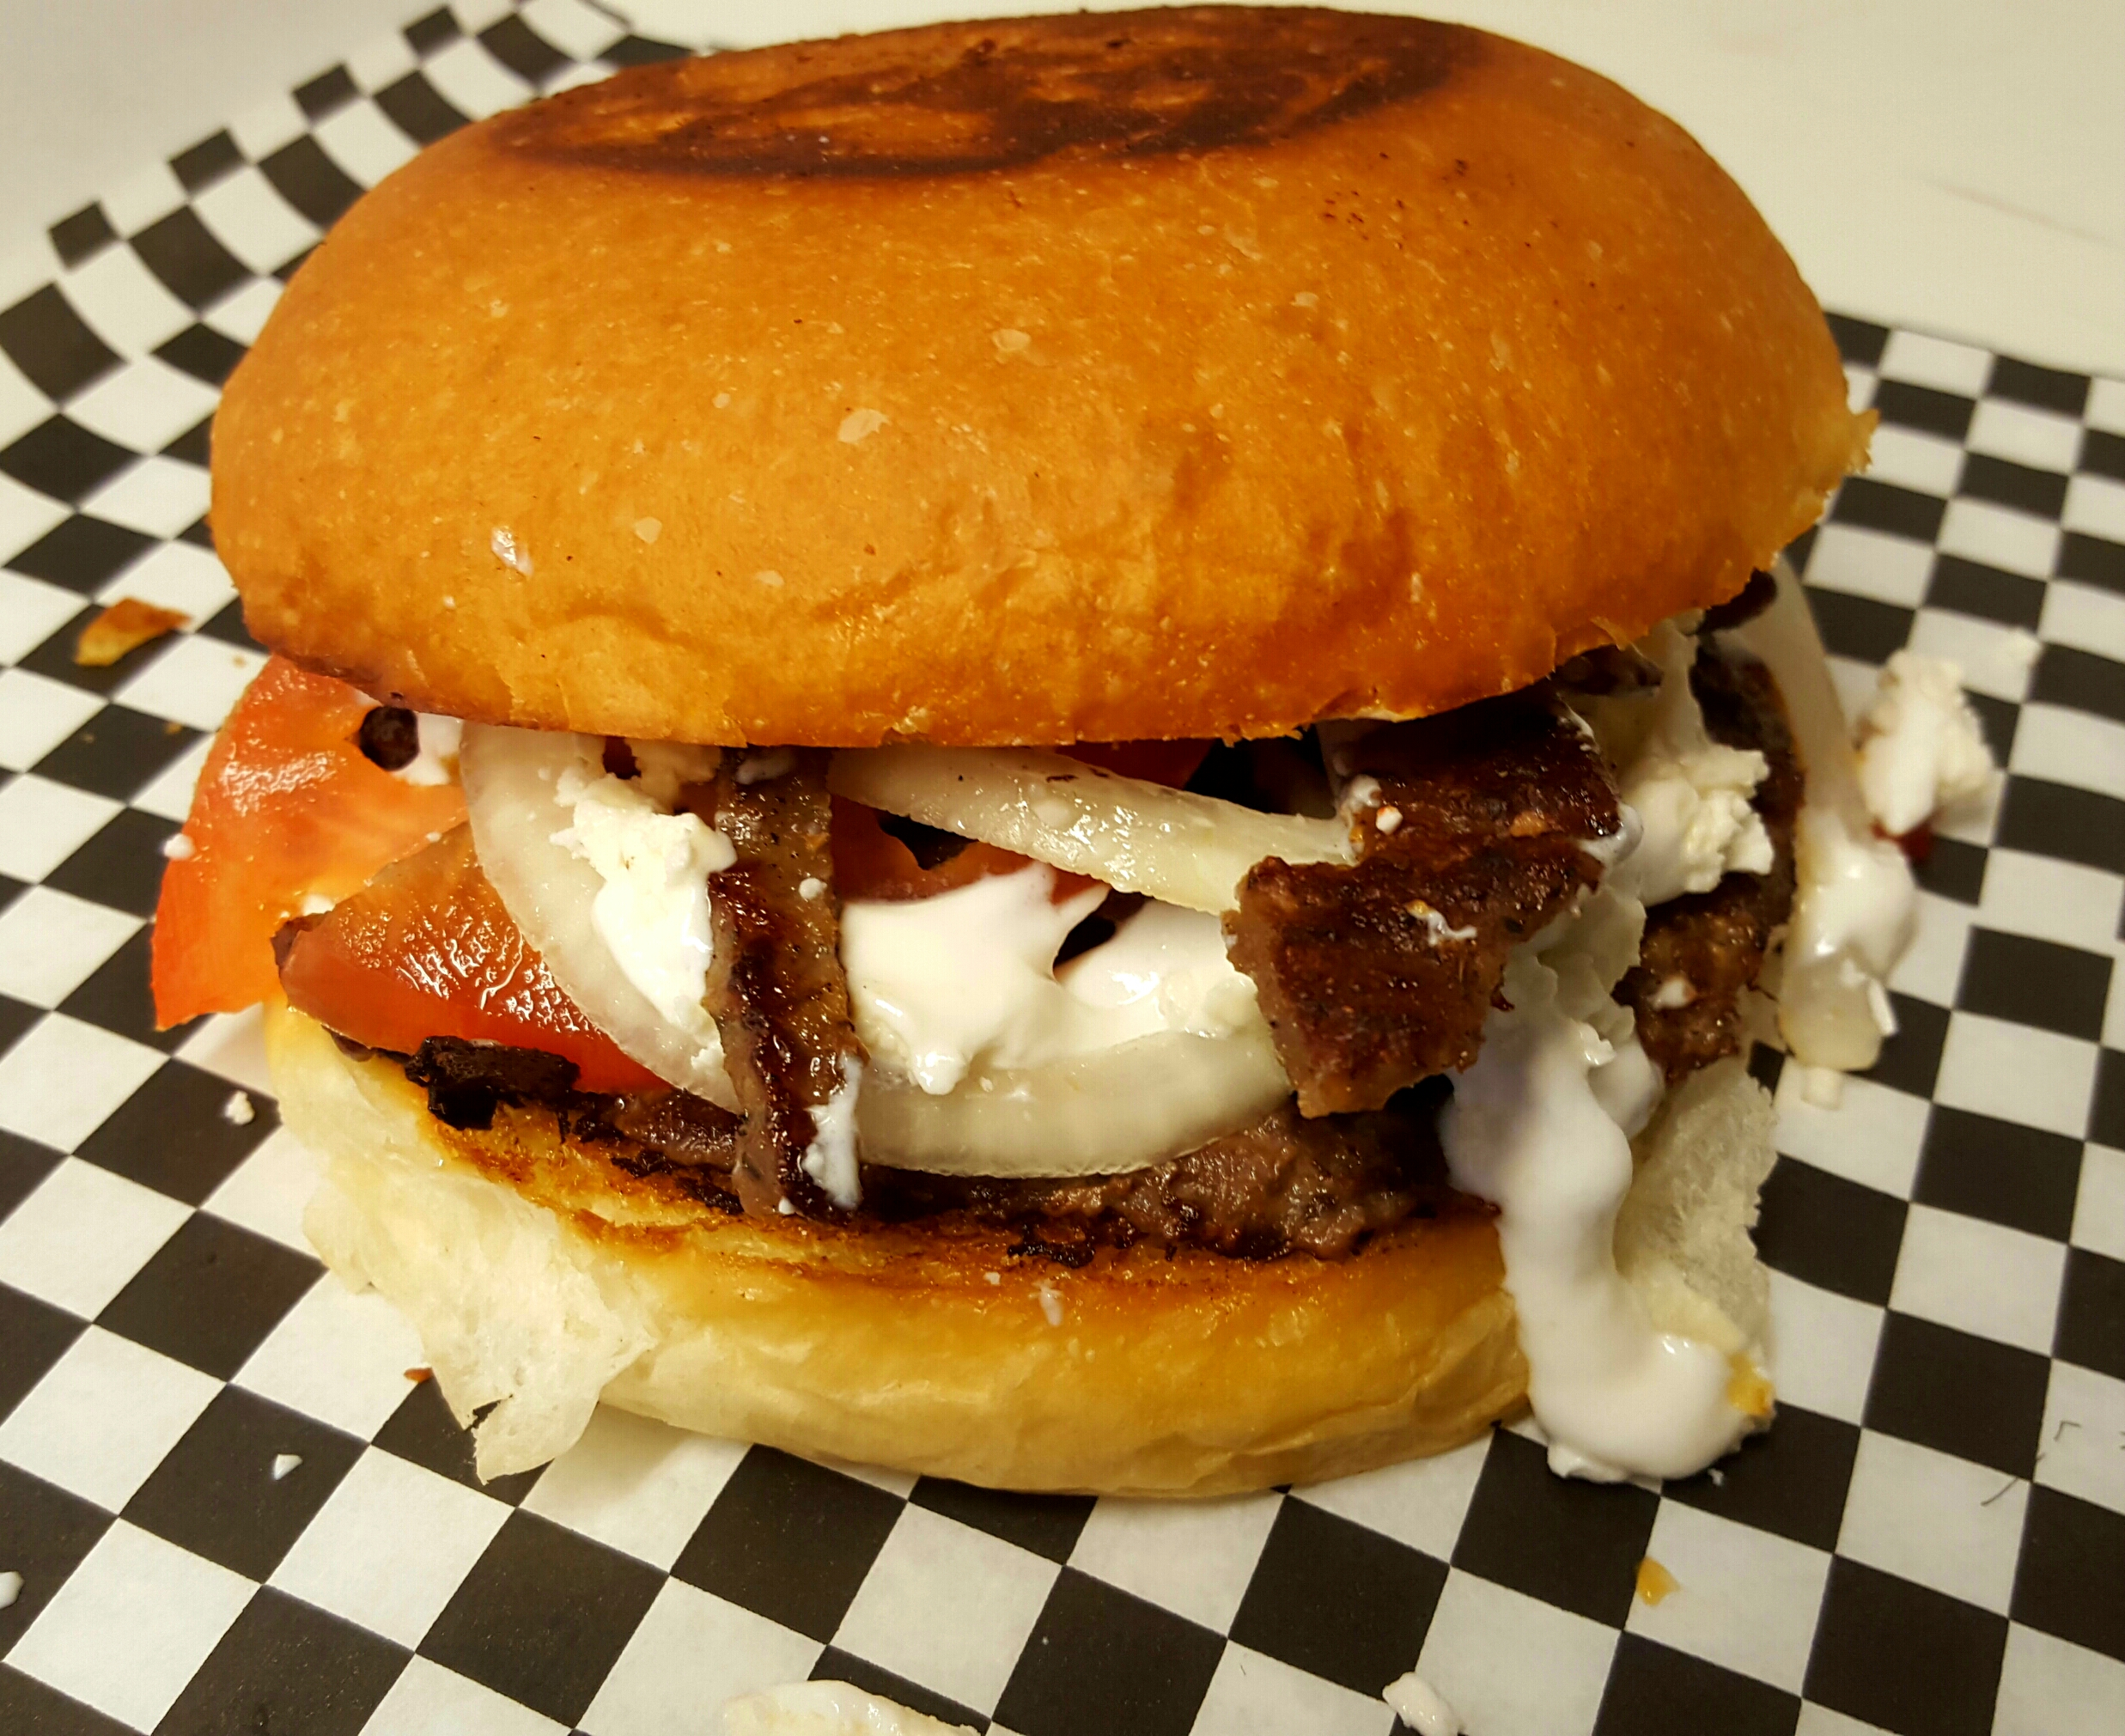 GREEK BURGER: A 1/3 lbs homemade beef pound patty, topped with Greek gyro meat (lamb and beef), fresh onions, tomatoes,     tzatziki    sauce, topped with    feta cheese.